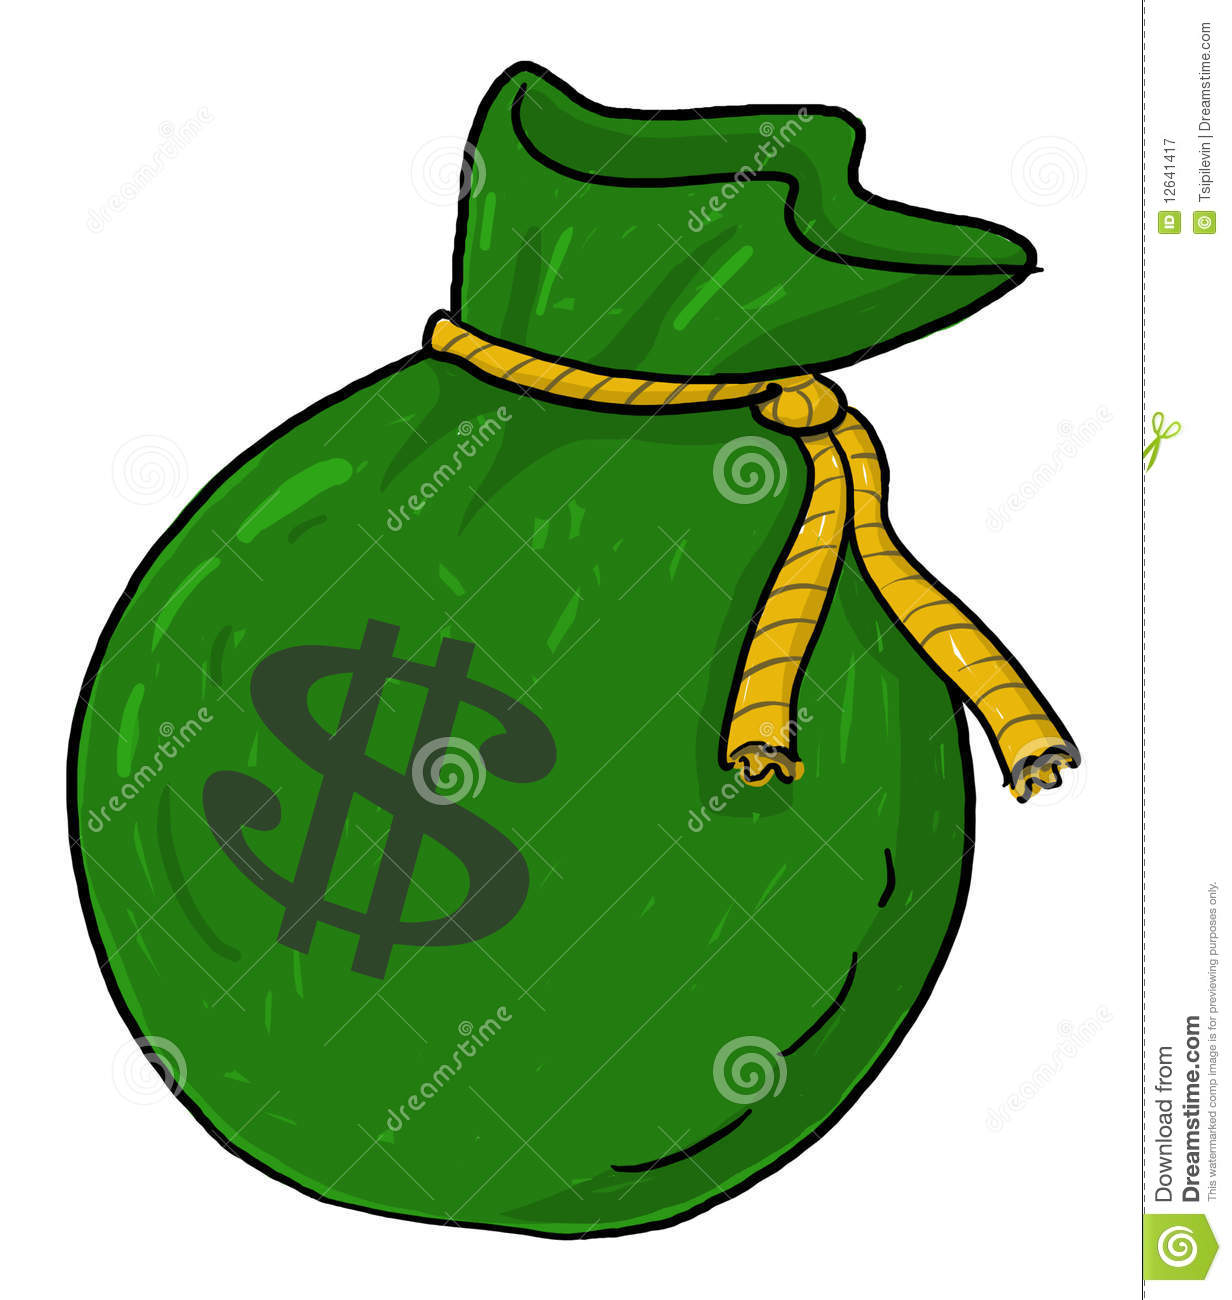 Bag With Money Sign Cartoon: Money Sack Illustration With Dollar Sign Royalty Free